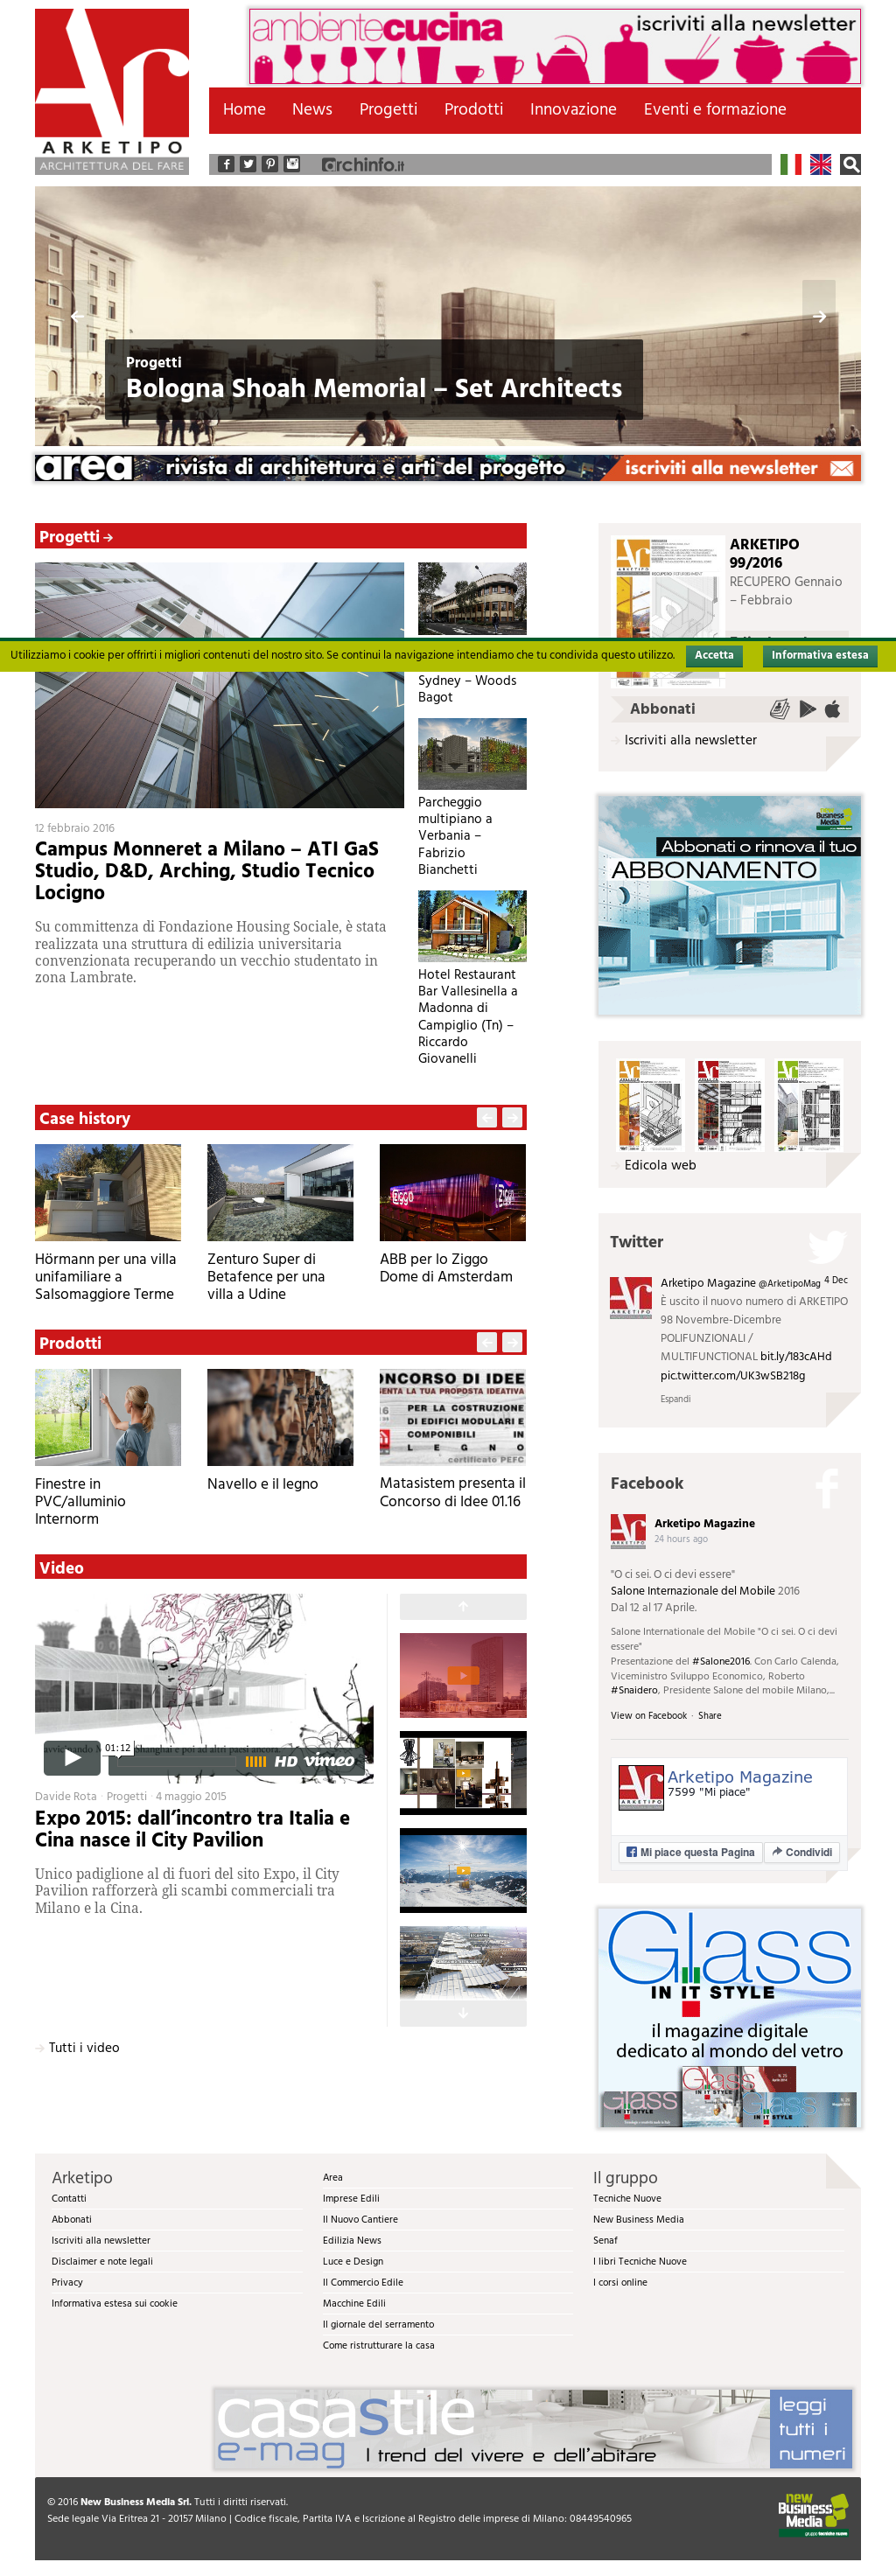 Abitare Ad Amsterdam arketipo magazine competitors, revenue and employees - owler